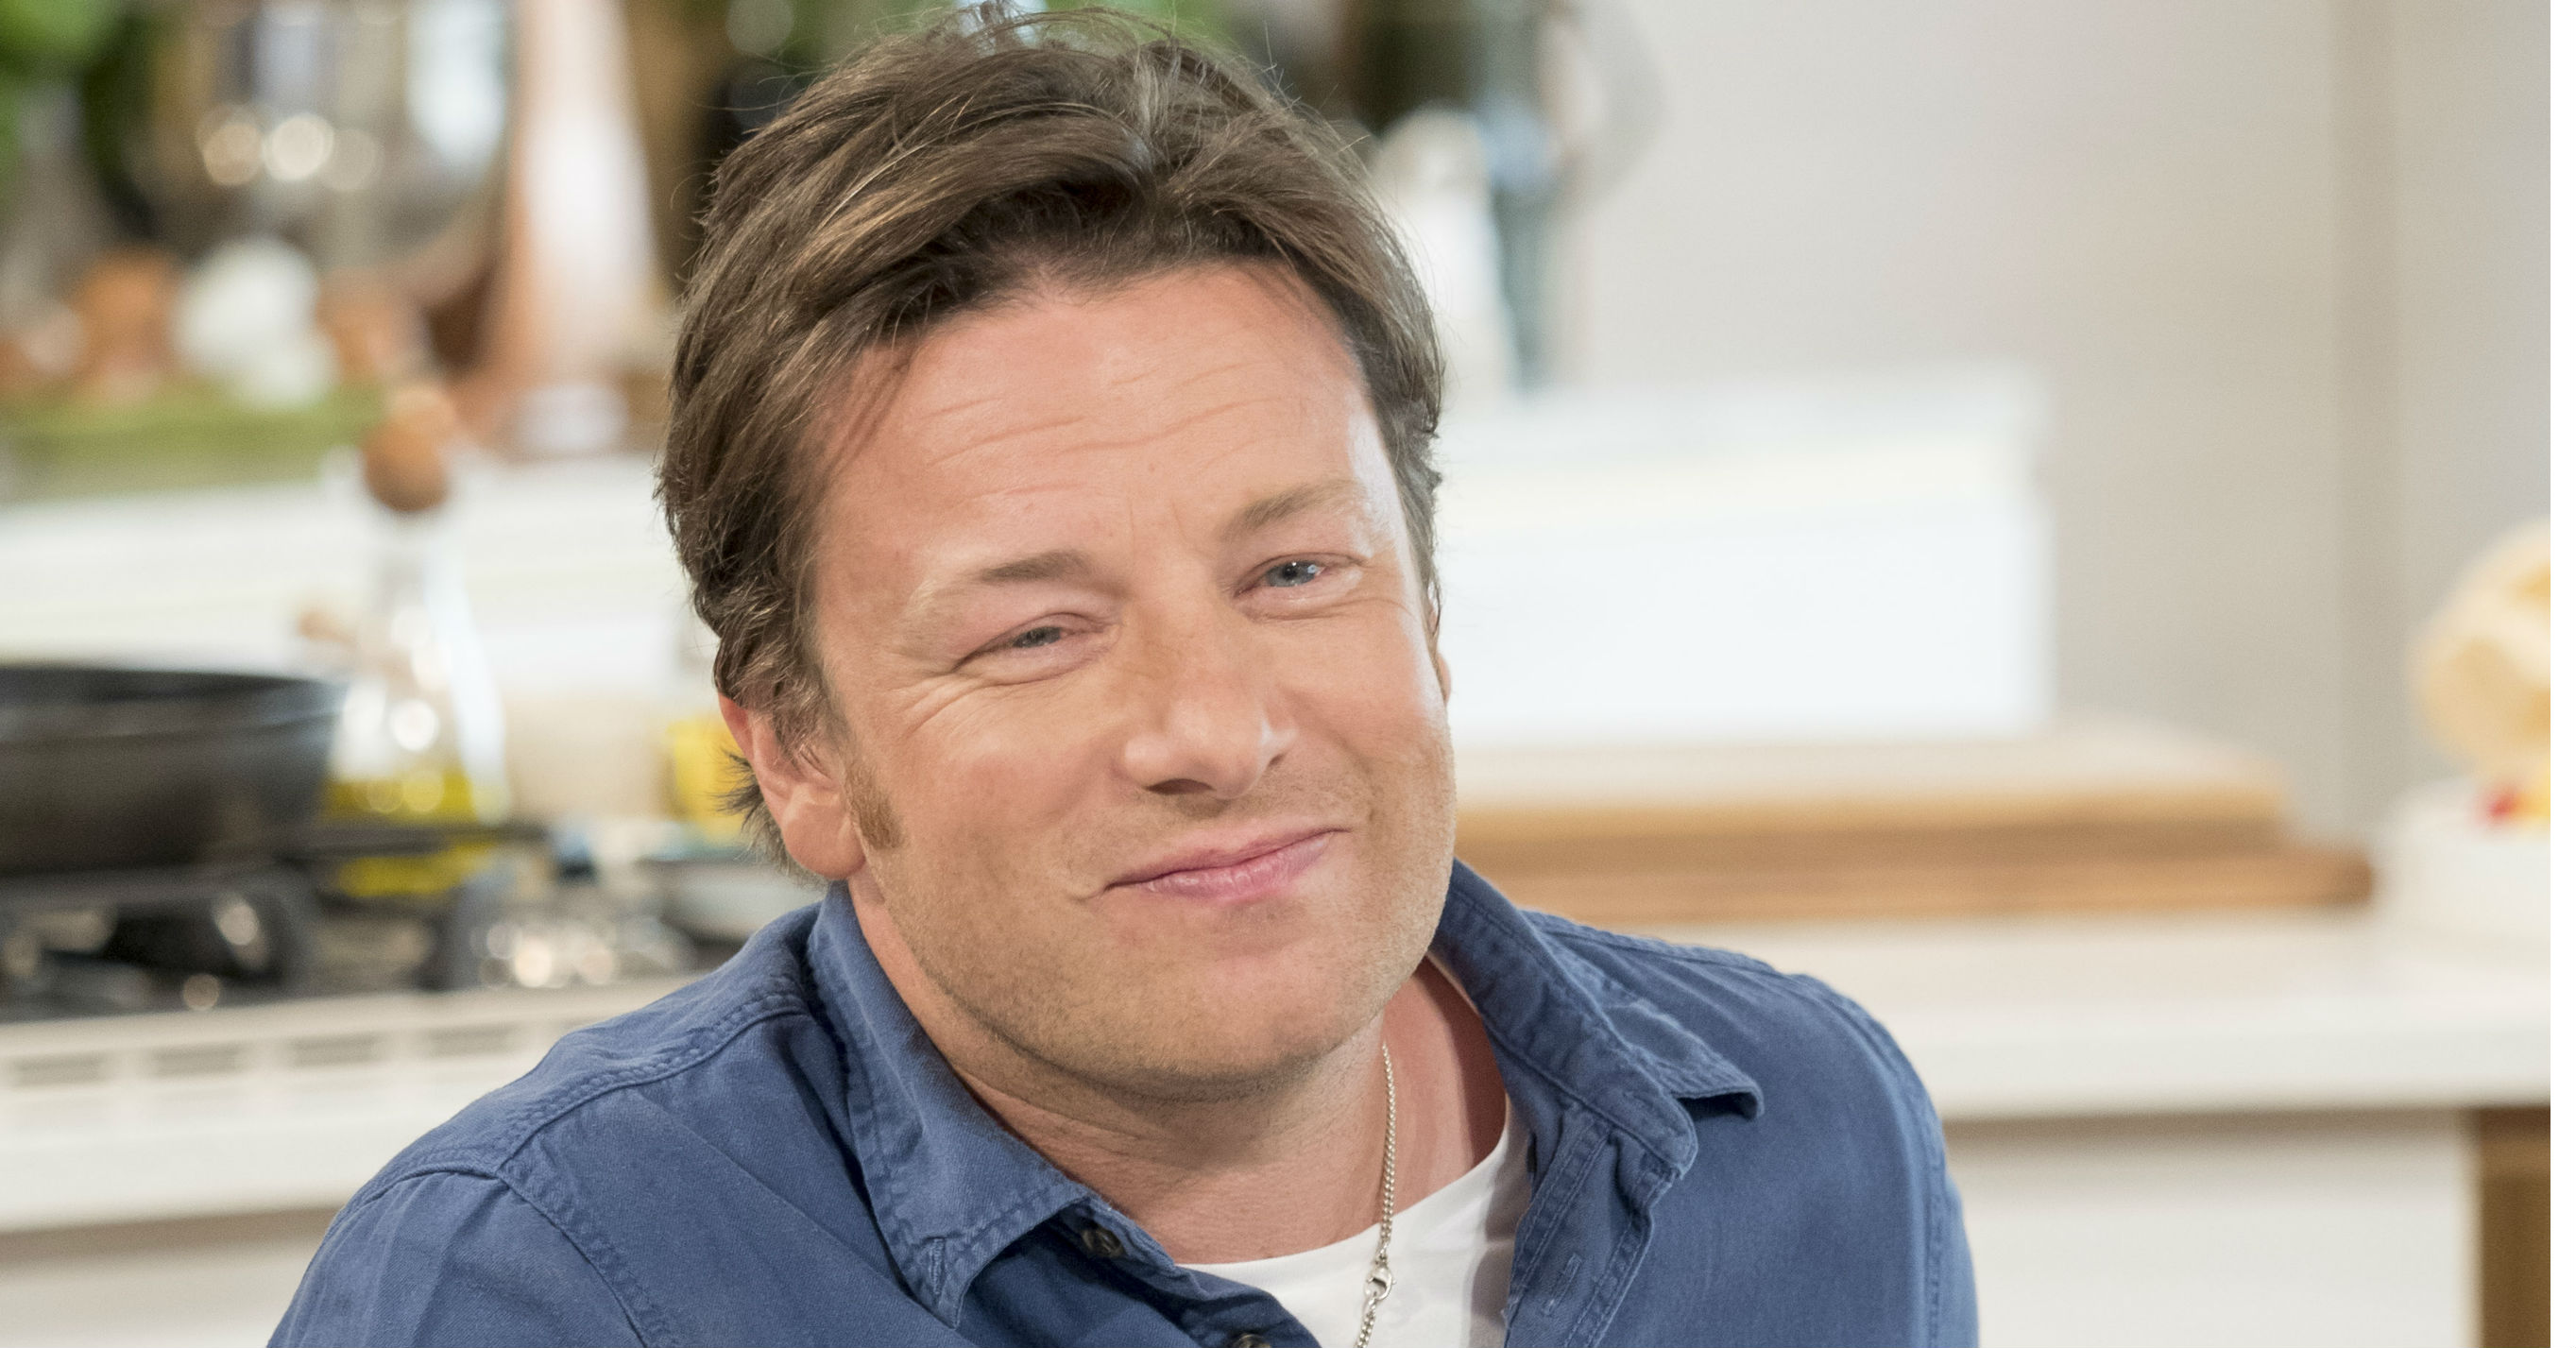 Jamie Oliver on GBBO rumours: 'I would get massive cred ...